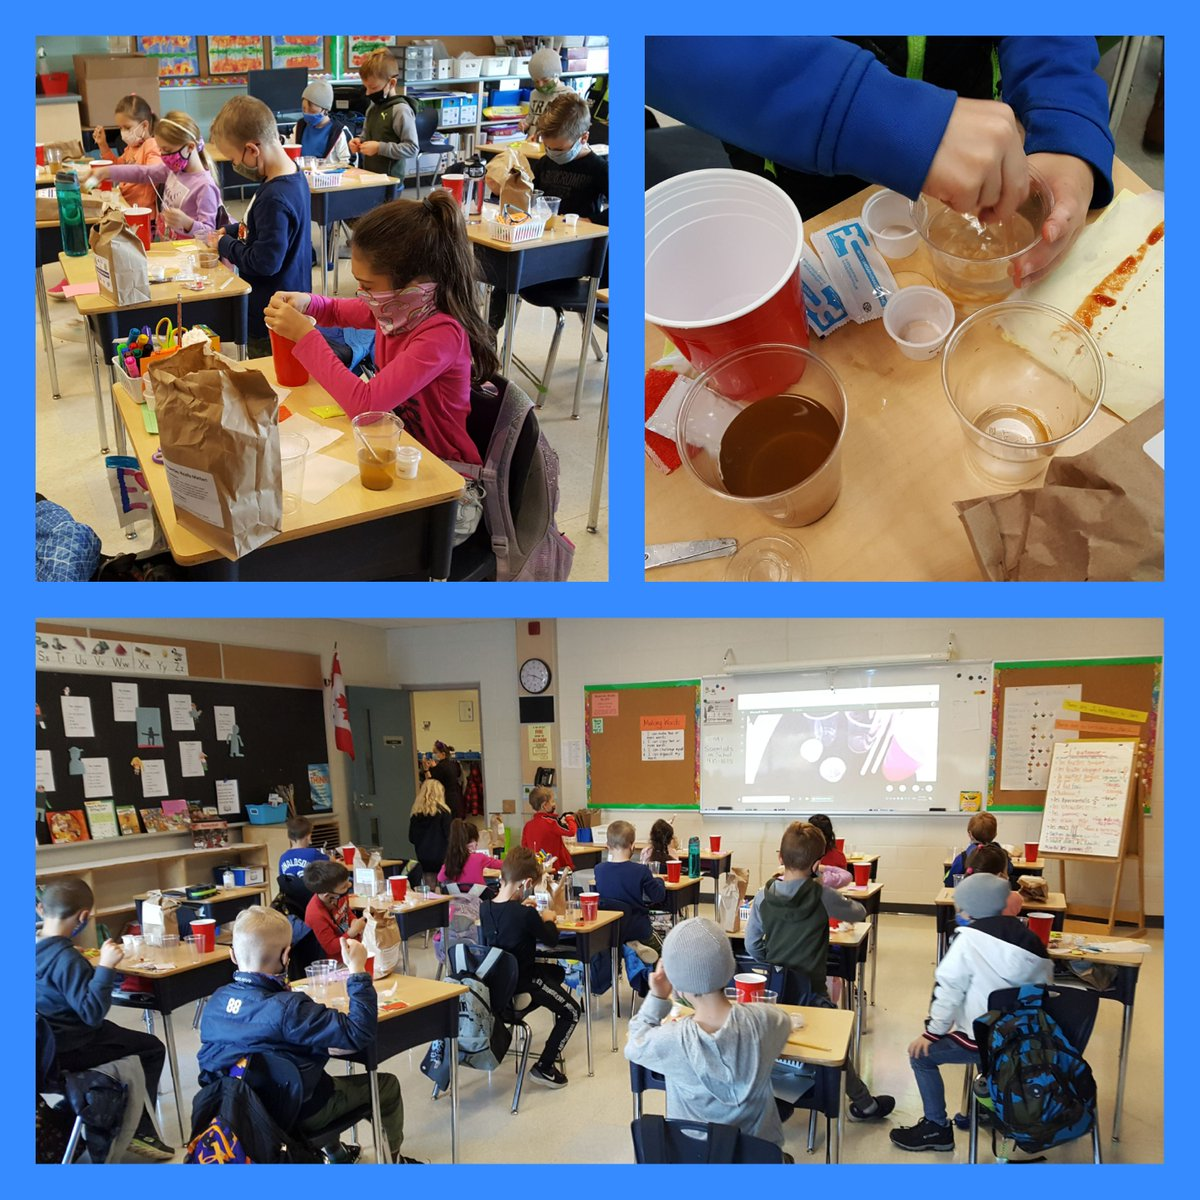 """Scientists at work... learning that """"Properties Really Matter!"""" @JBoltonps @Sci_in_School https://t.co/mh2CTLxFYM"""